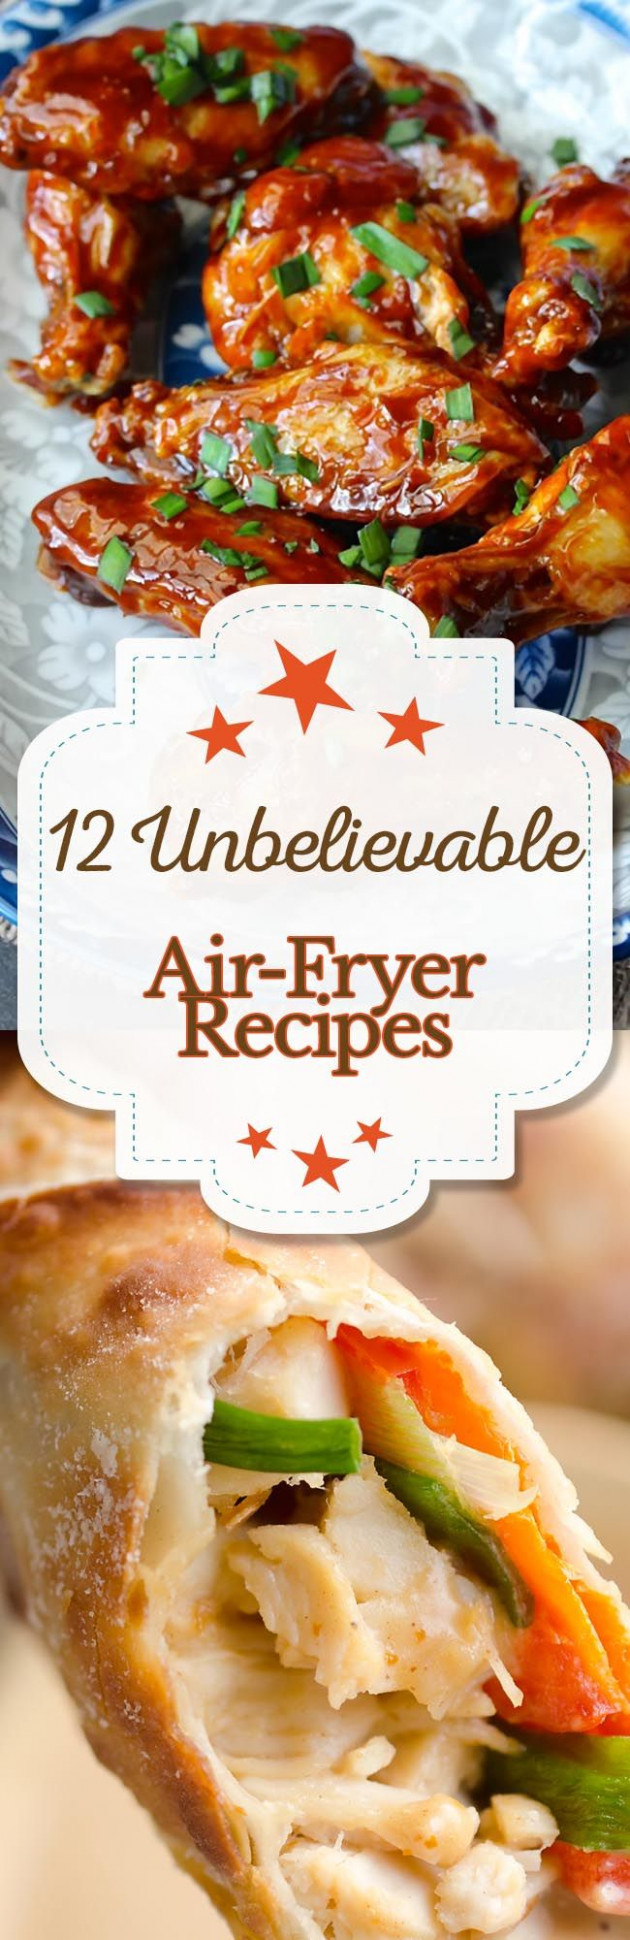 12 Unbelievable Recipes to Make in Your Air Fryer | Just ..